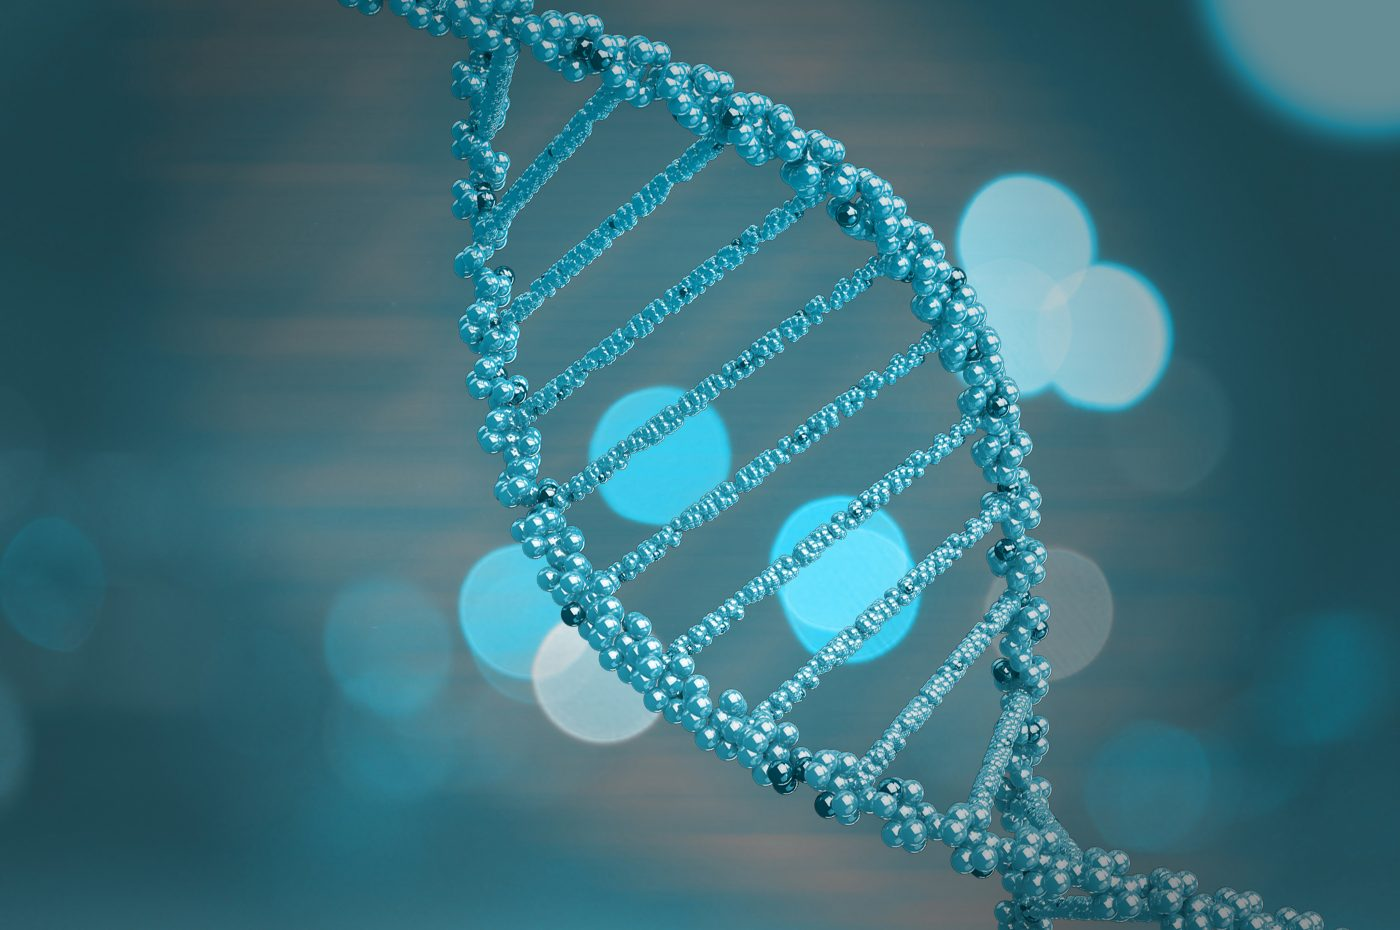 Messenger RNA Seen as Potential New Treatment Target in Huntington's